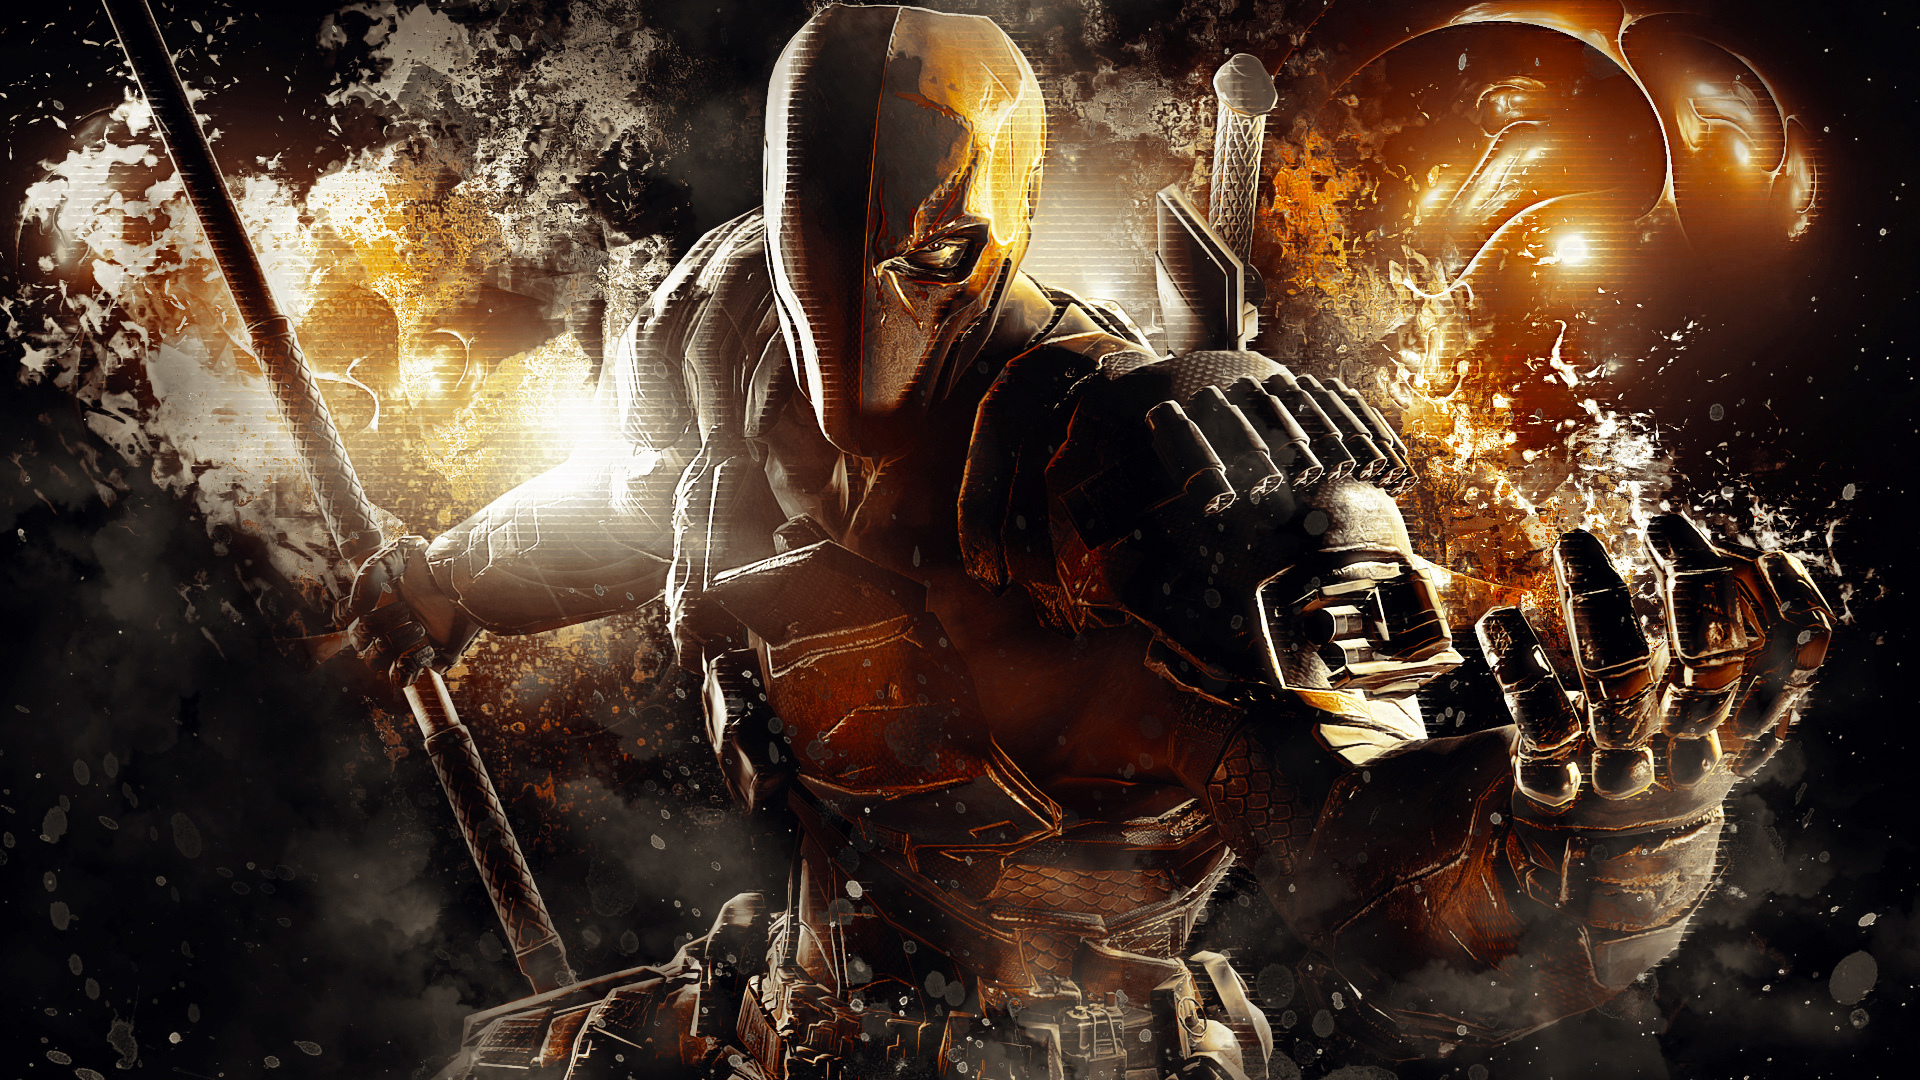 Wallpaper HD Games   HD Wallpapers Backgrounds of Your Choice 1920x1080